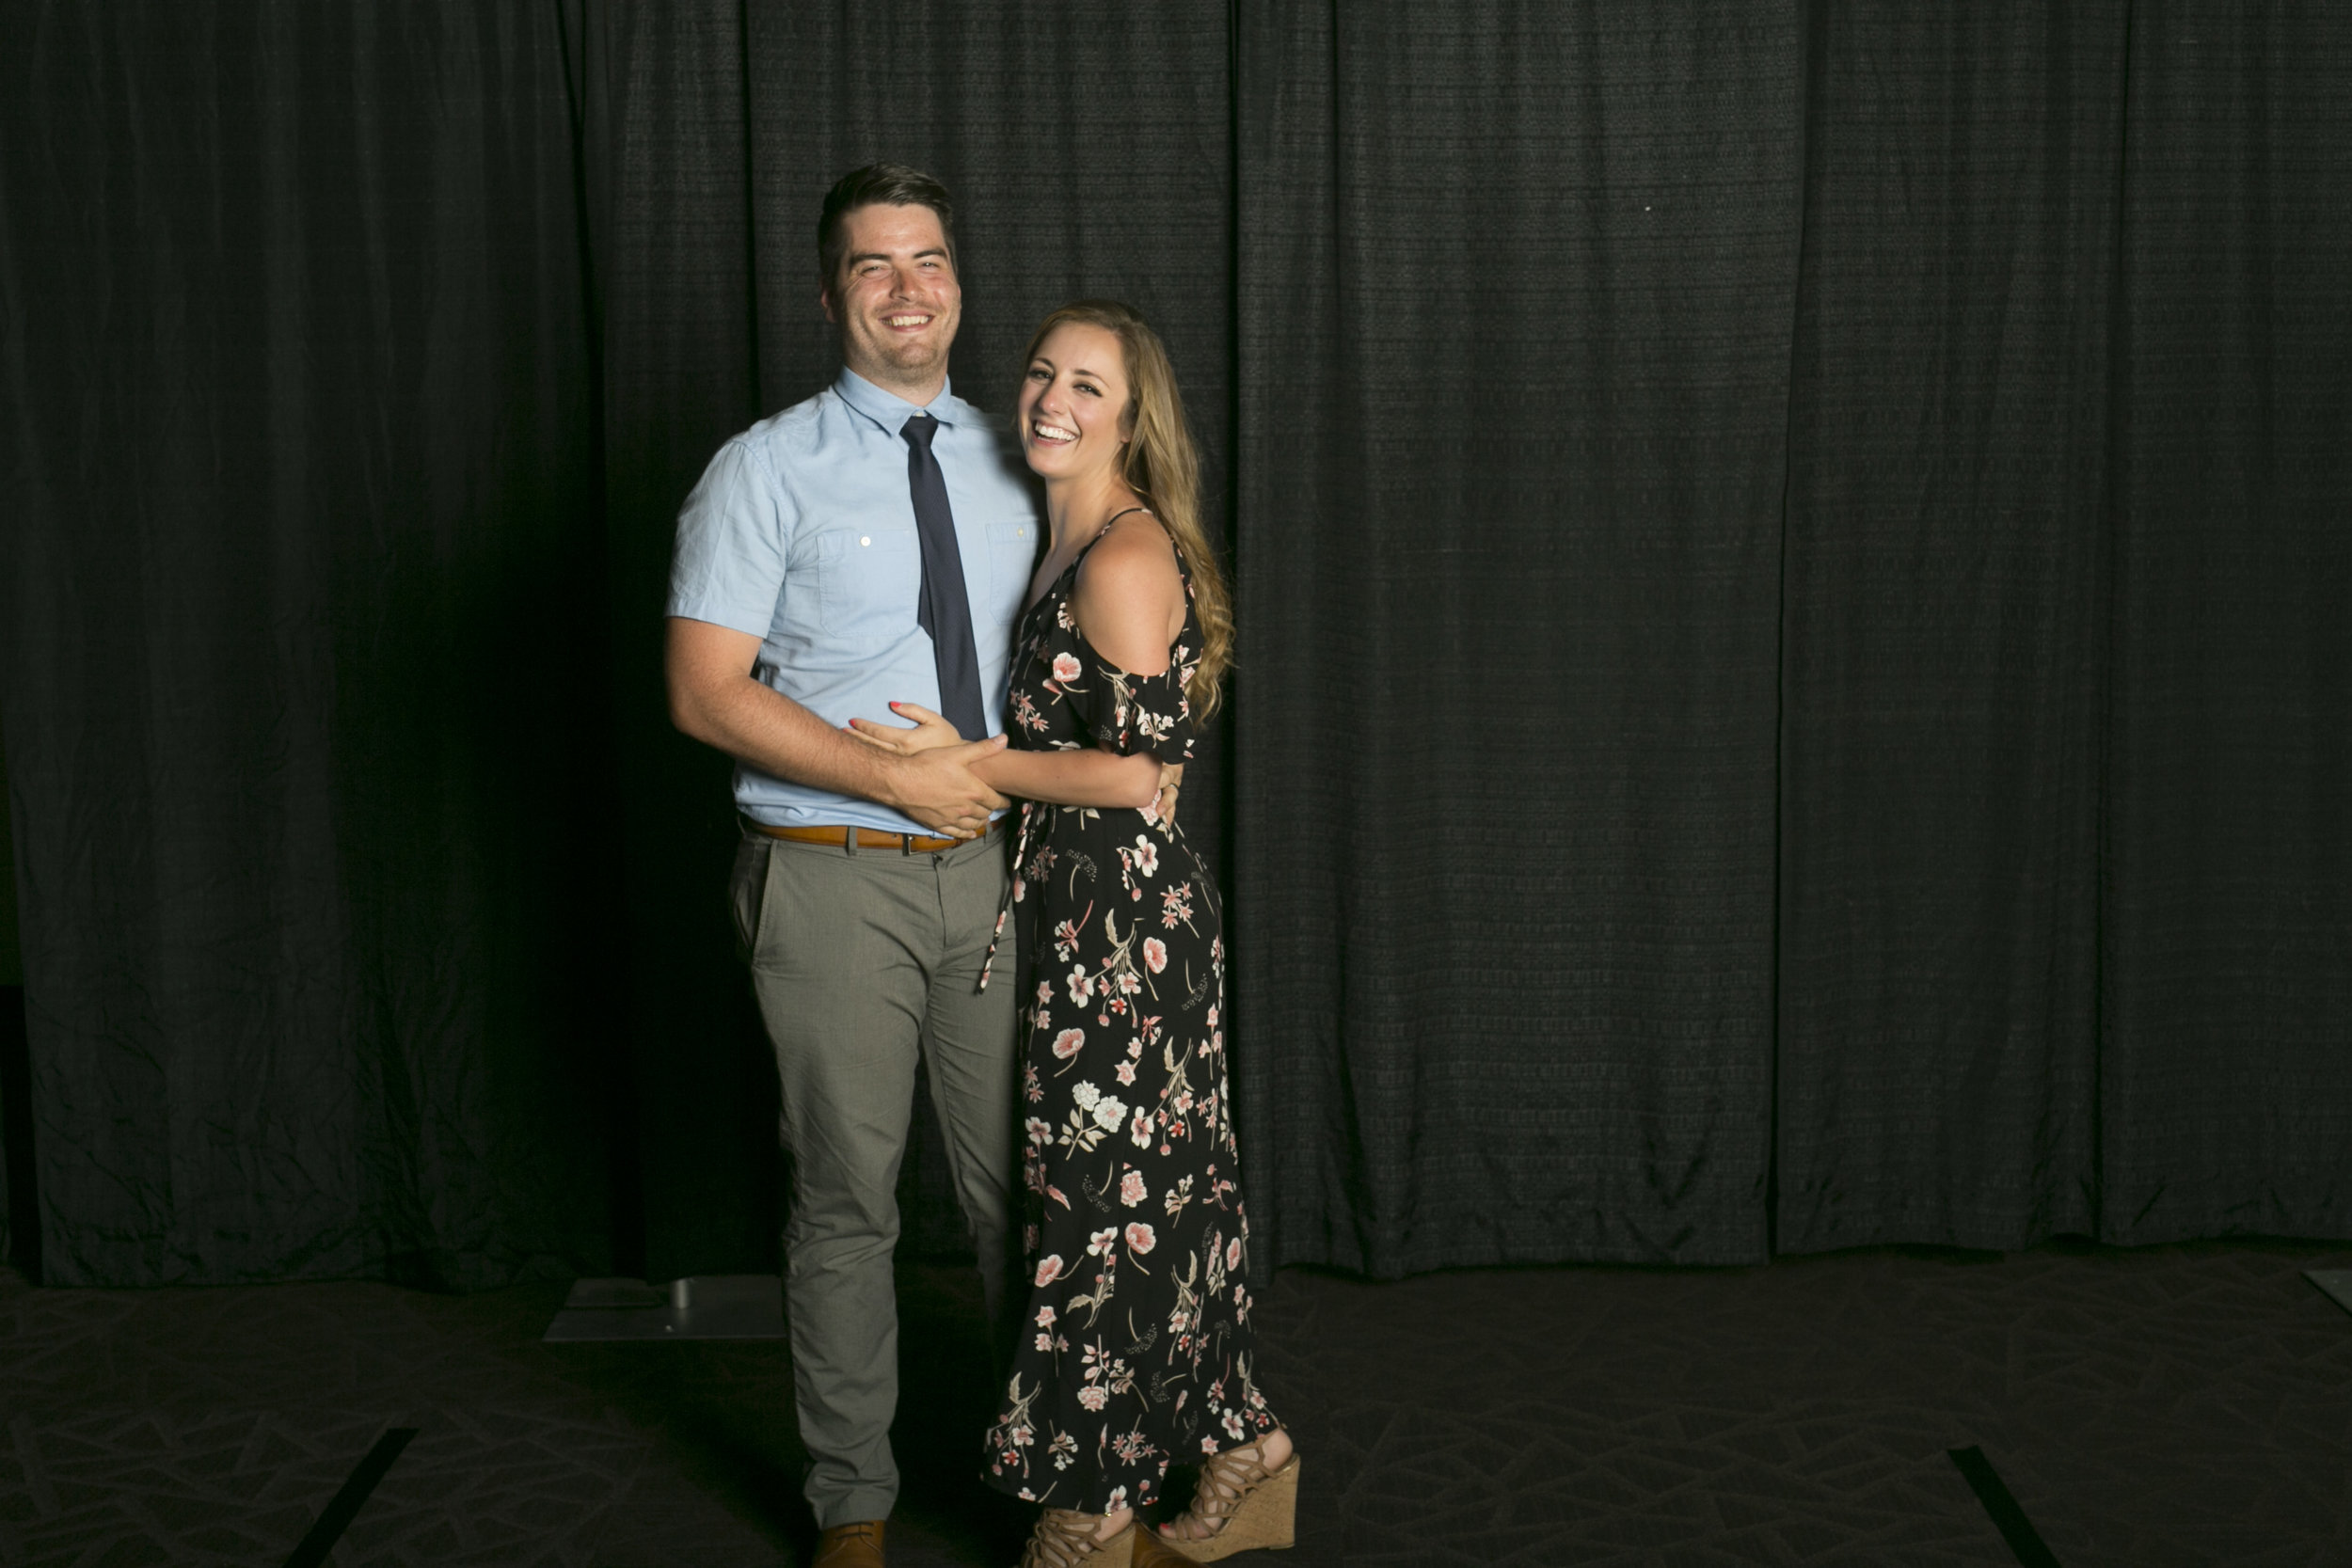 wedding photo booth-25.jpg